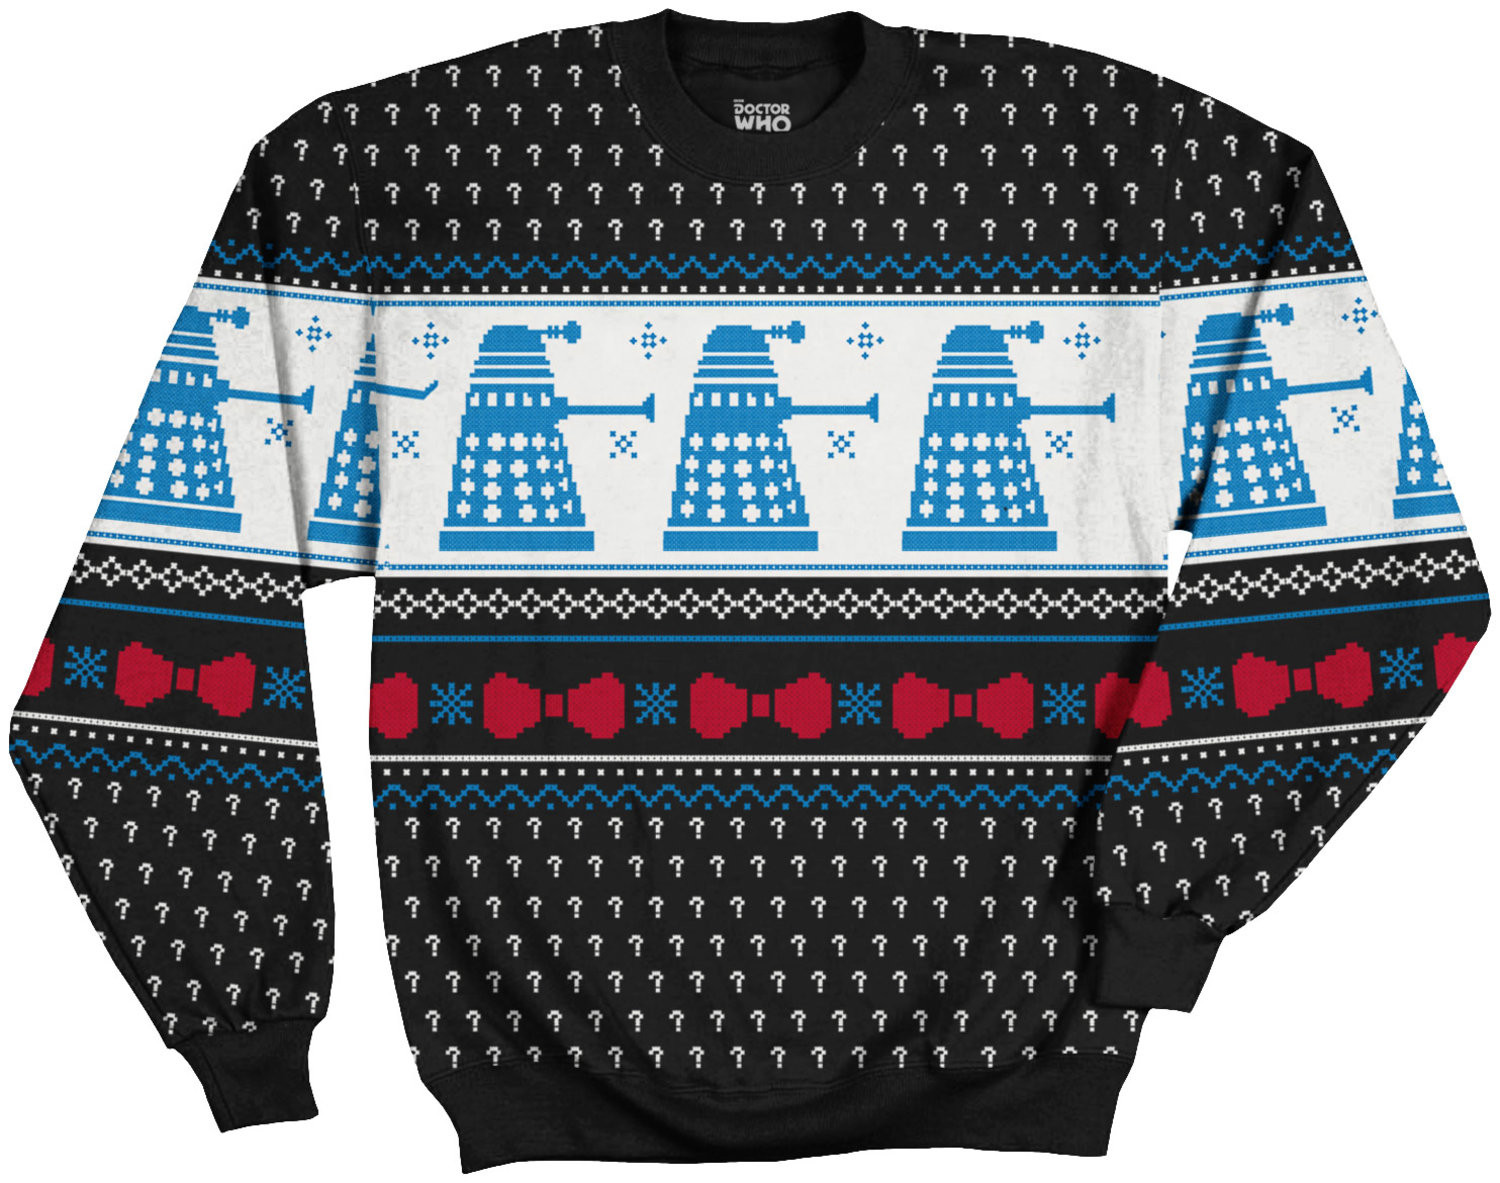 Nerd Christmas Jumper.20 Ugly Christmas Sweaters Every Geek Will Want